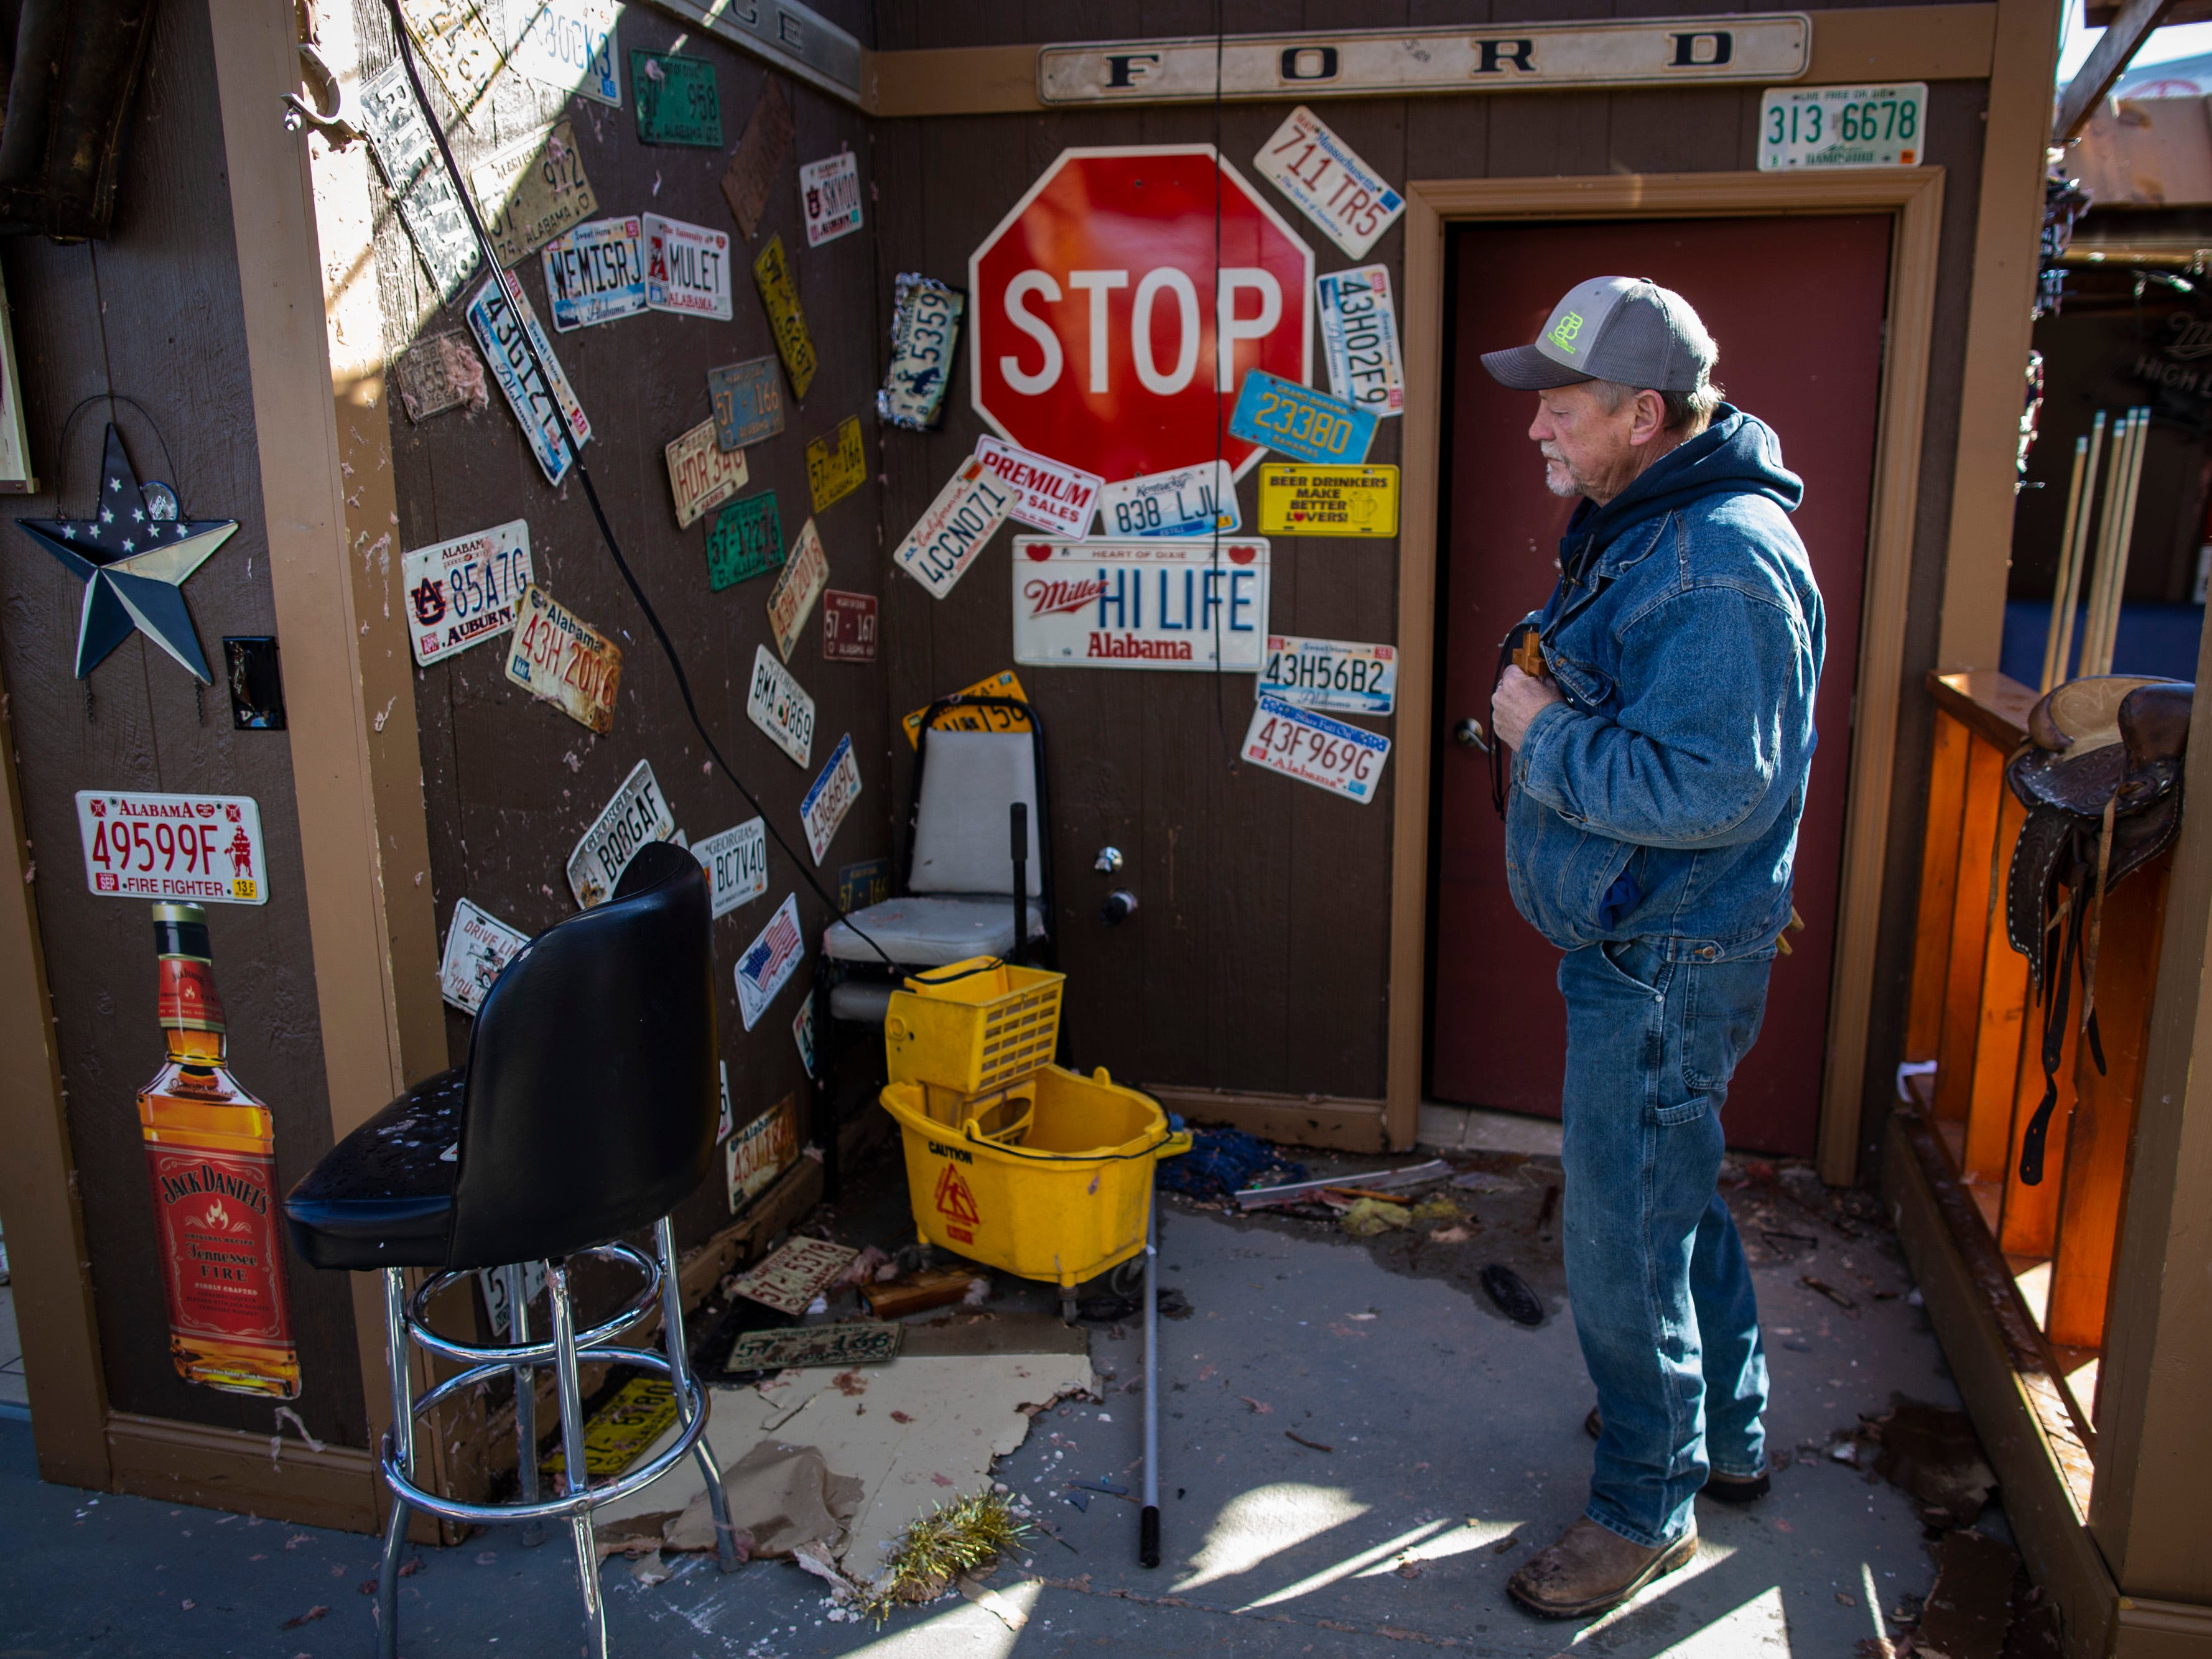 Buck Wild Saloon owner David McBride clutches a small wooden cross as he looks over the Alabama license plates still remaining in his bar in Smiths Station, Ala on March 5, 2019.